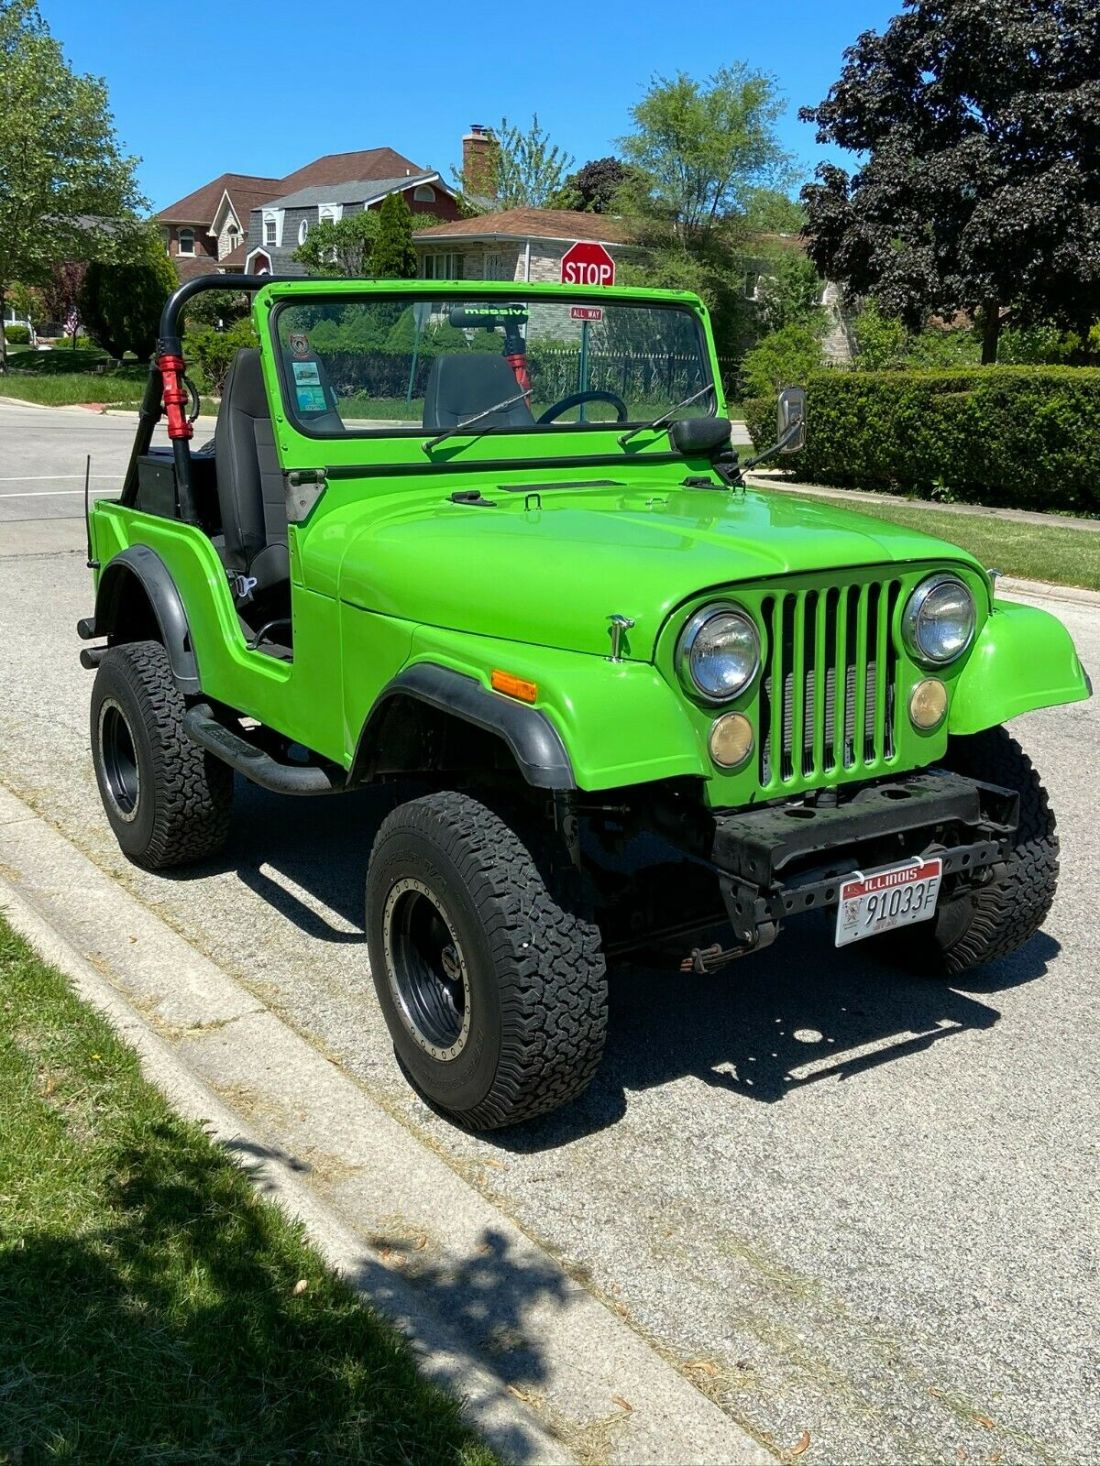 1974 Jeep Cj5 Base 5 0l 304 V8 3 Speed Running Project Low Reserve For Sale Jeep Cj 1974 For Sale In Niles Illinois United States